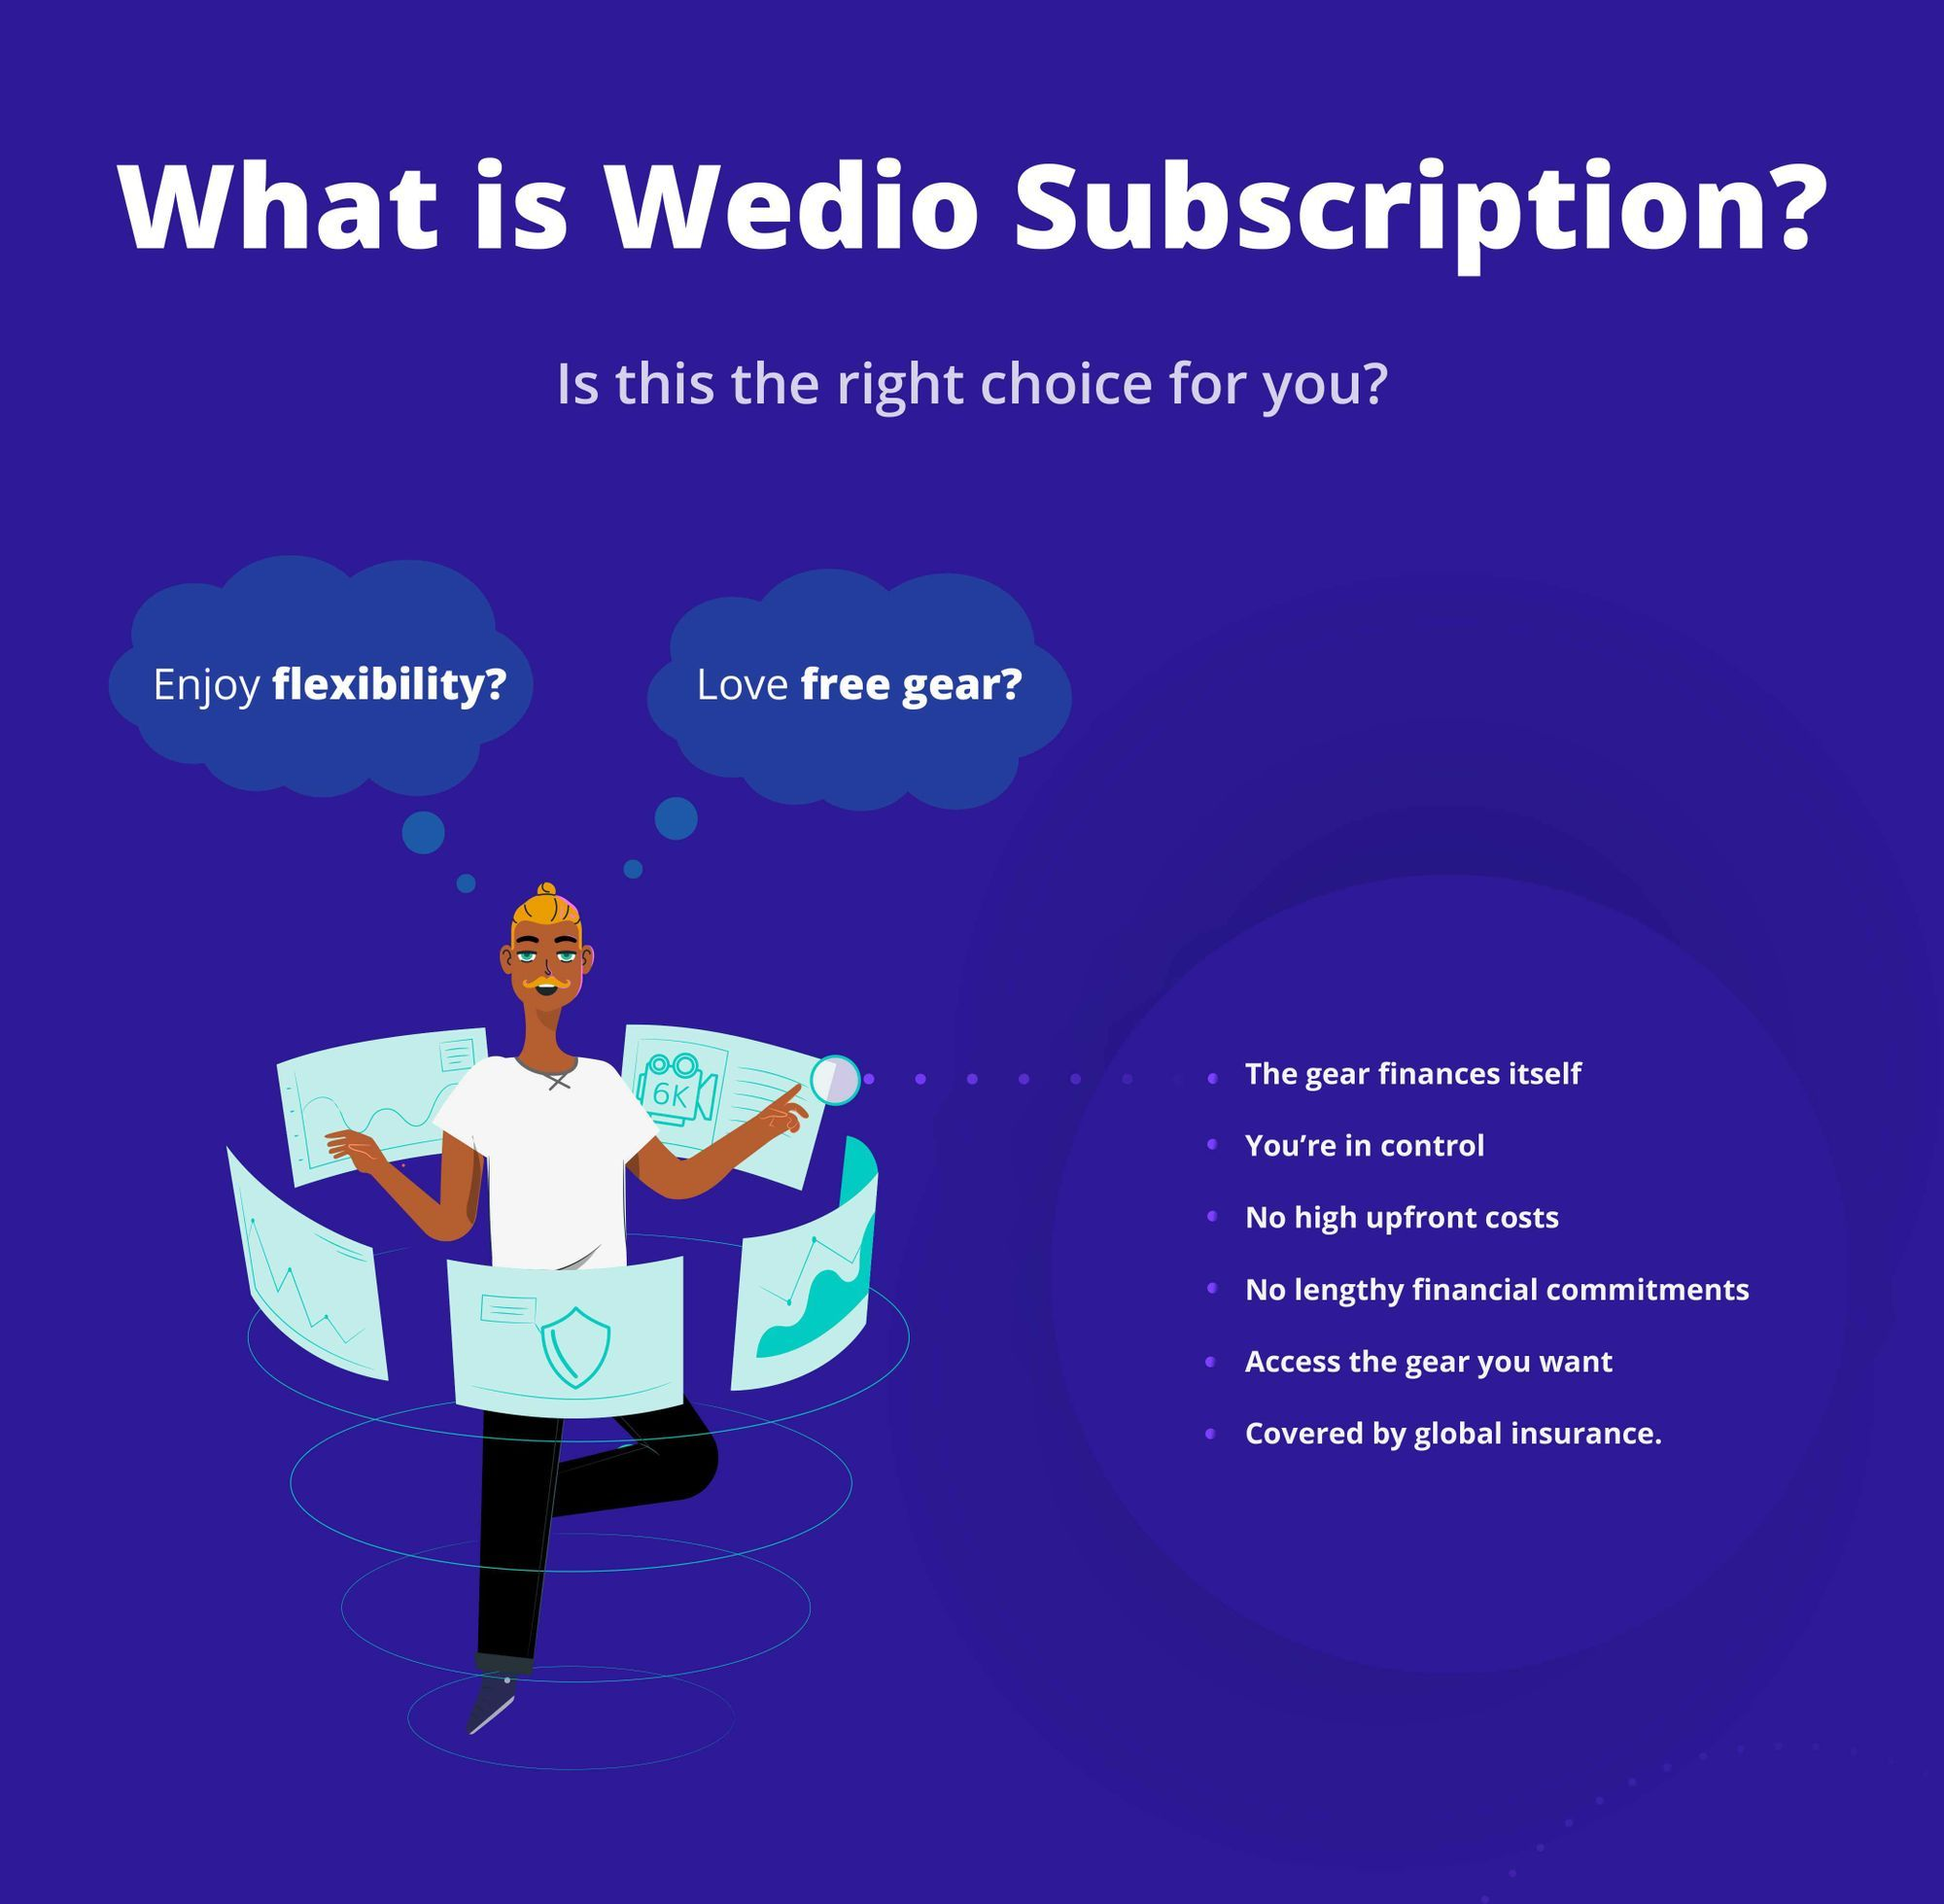 What is Wedio Subscription? Is this the right choice for you? Enjoy flexibility and free gear